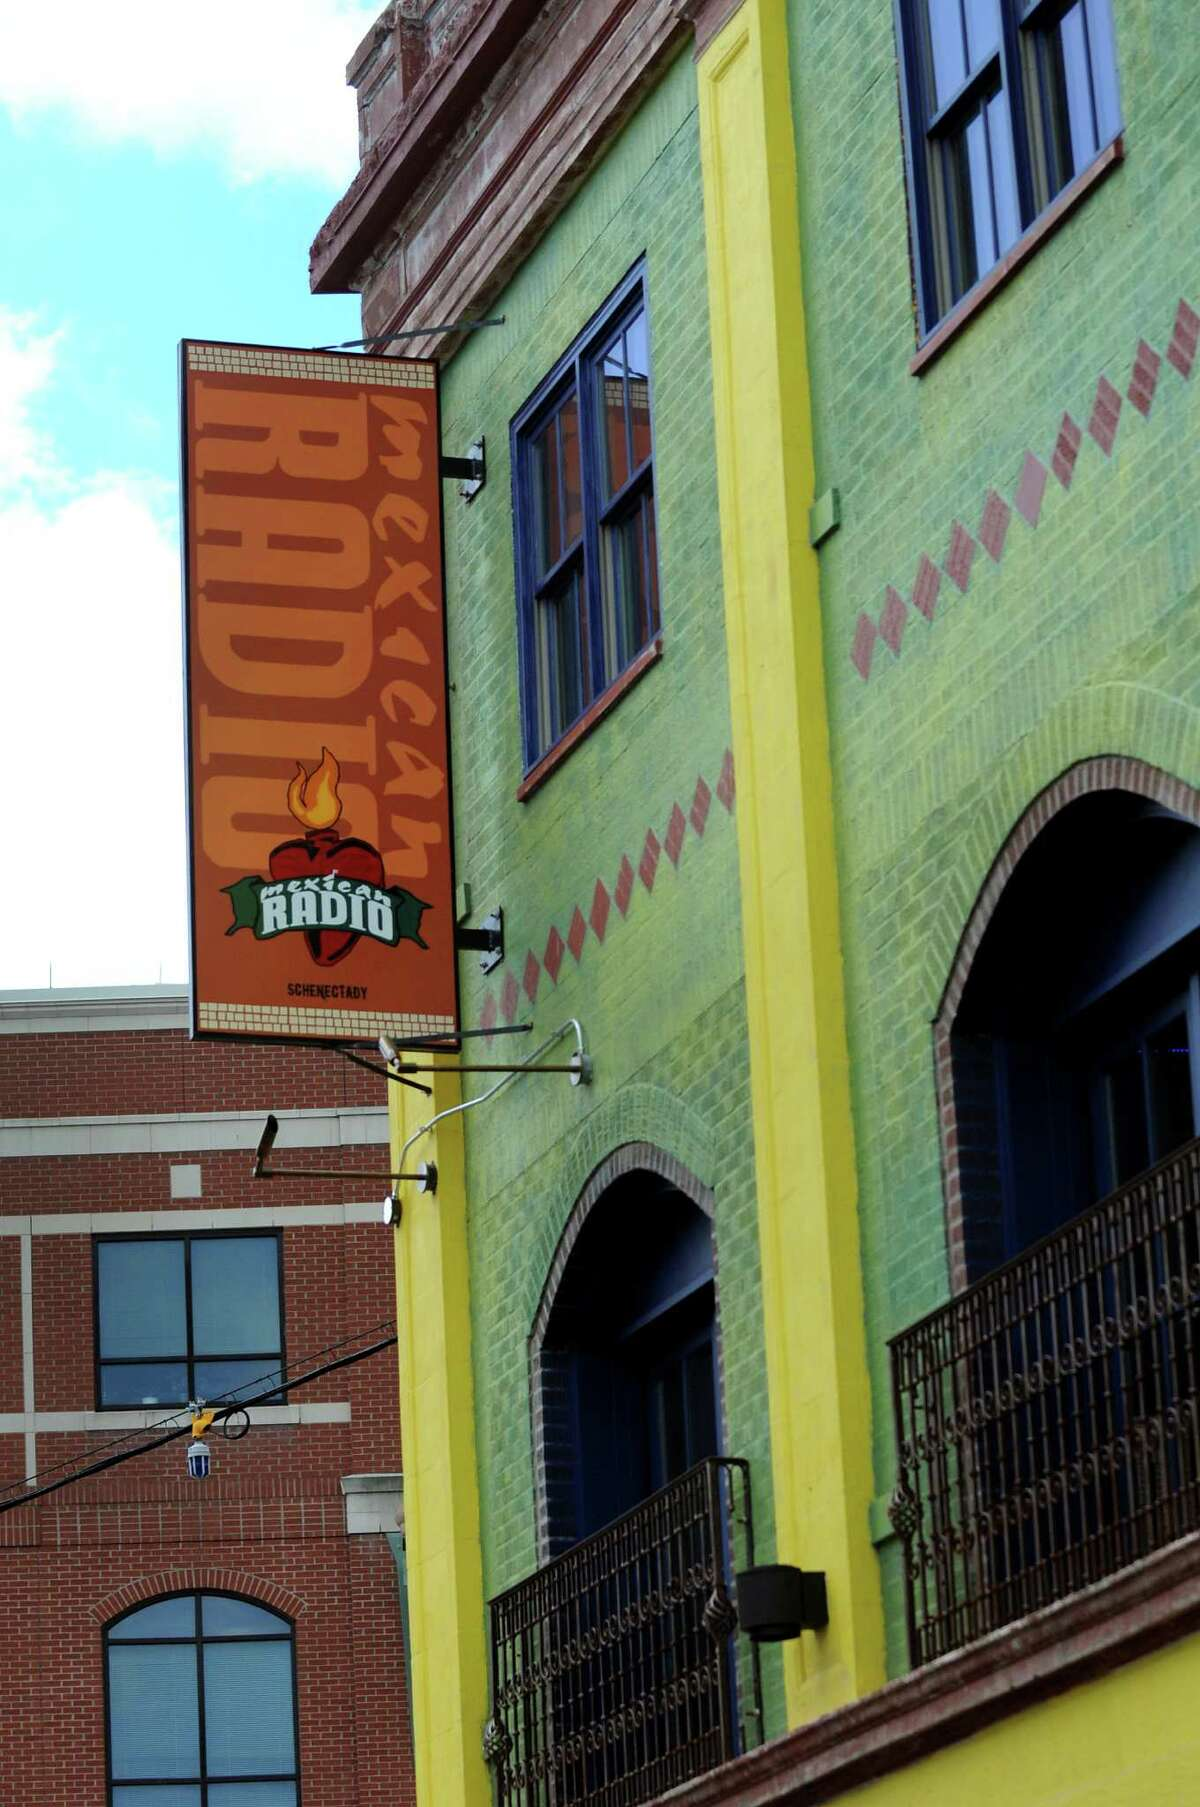 Mexican Radio on State Street and Broadway on Tuesday, May 6, 2014, in Schenectady, N.Y. (Cindy Schultz / Times Union)